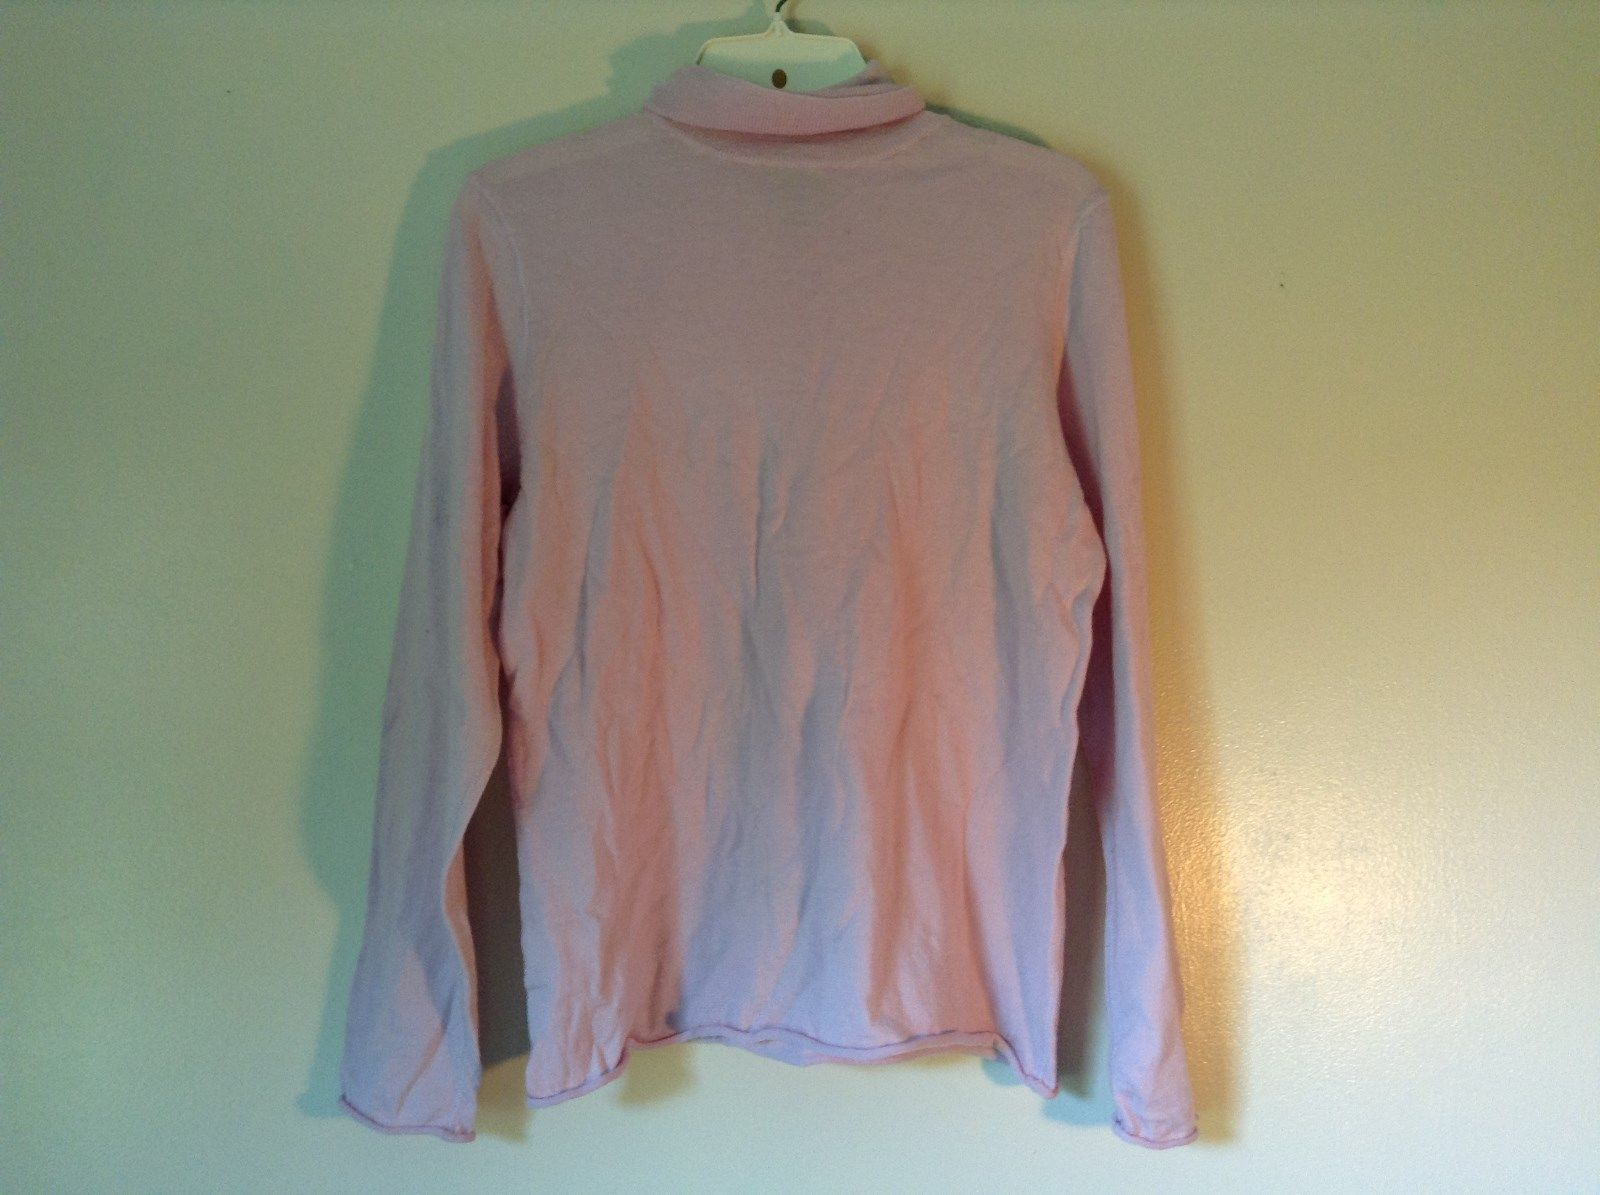 100% Merino Wool Long Sleeve L L Bean Pink Turtleneck Top Size Medium Regular